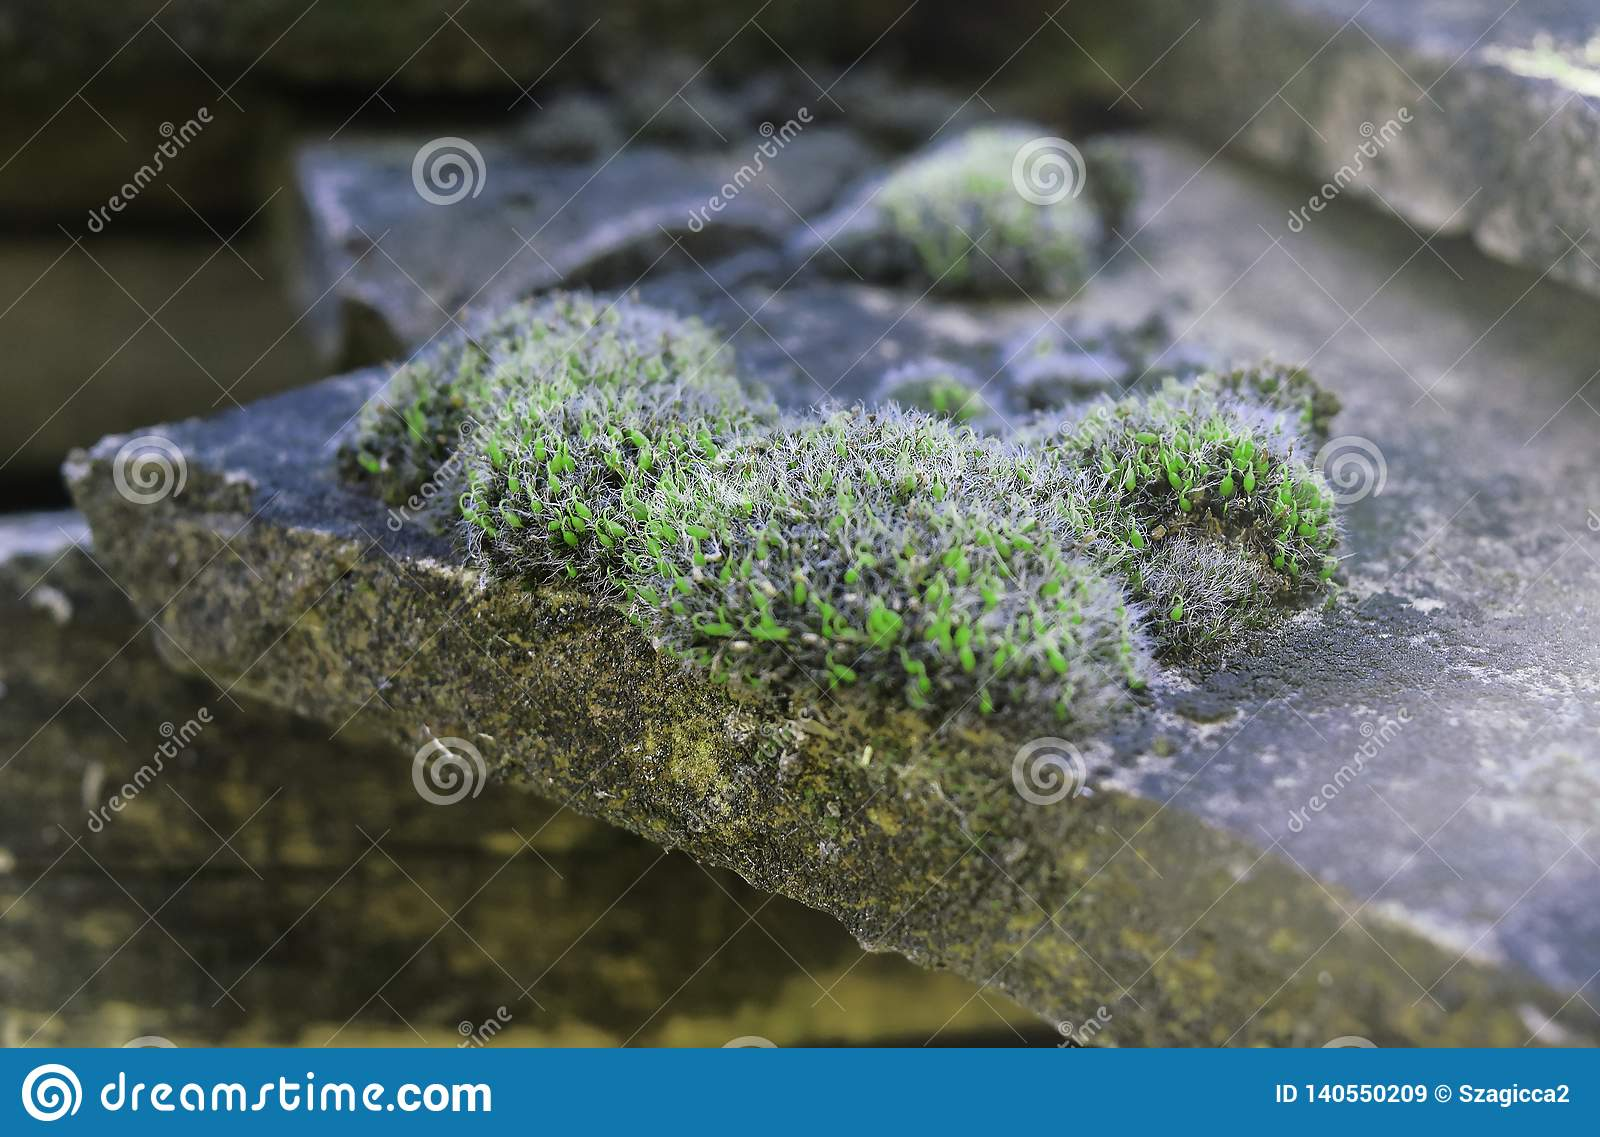 Green Moss on a antique, old tiled roof. Macro, shallow focus view of wet moss seen growing on roof tiling.